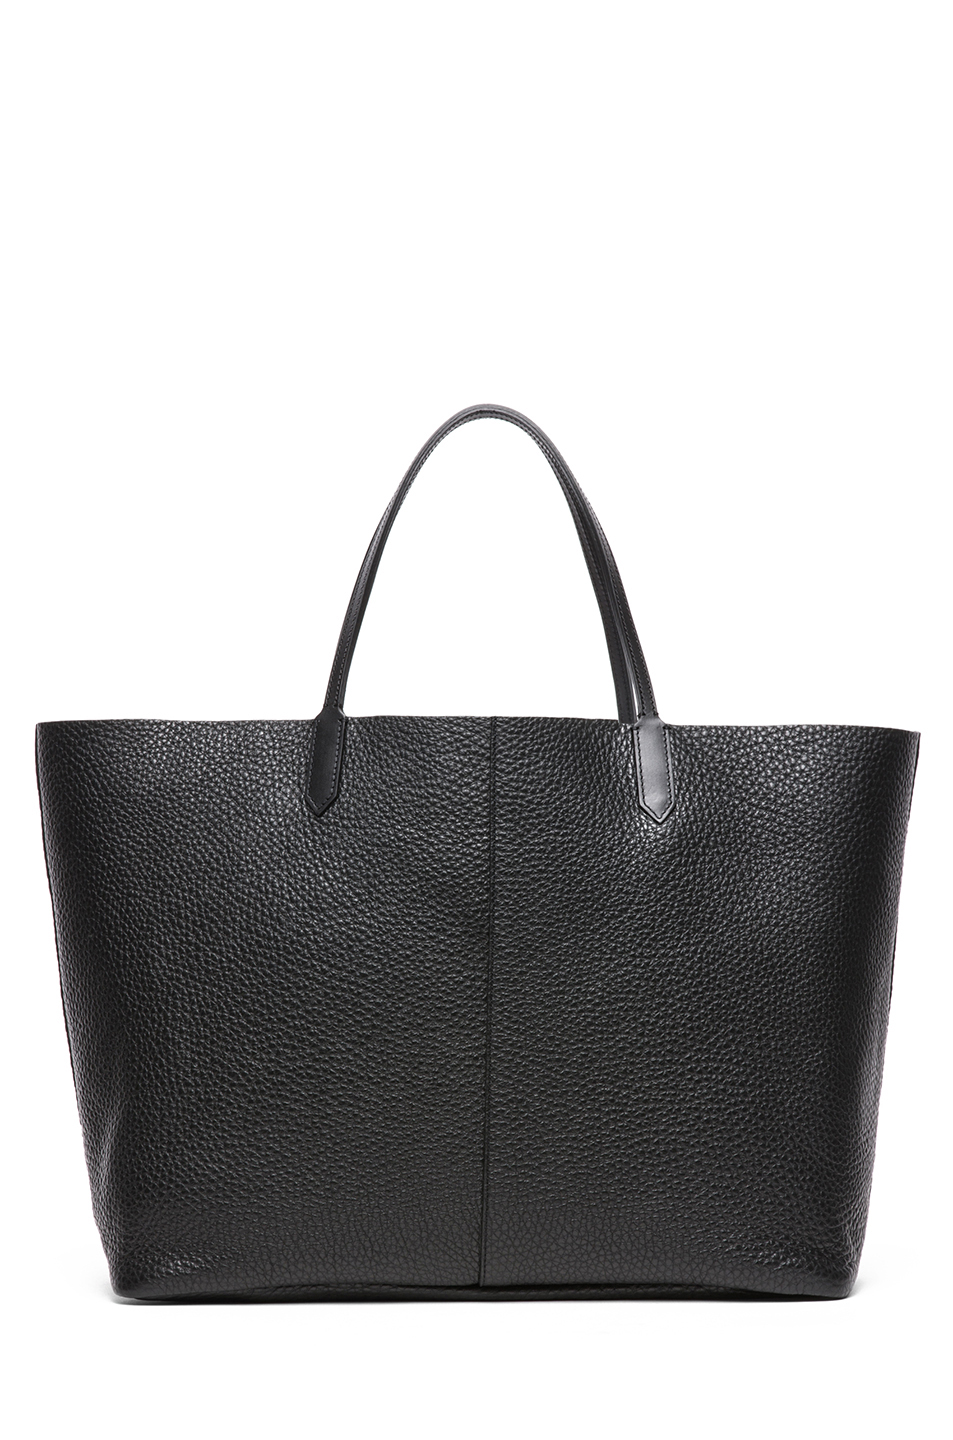 GIVENCHY|Antigona Shopper in Black